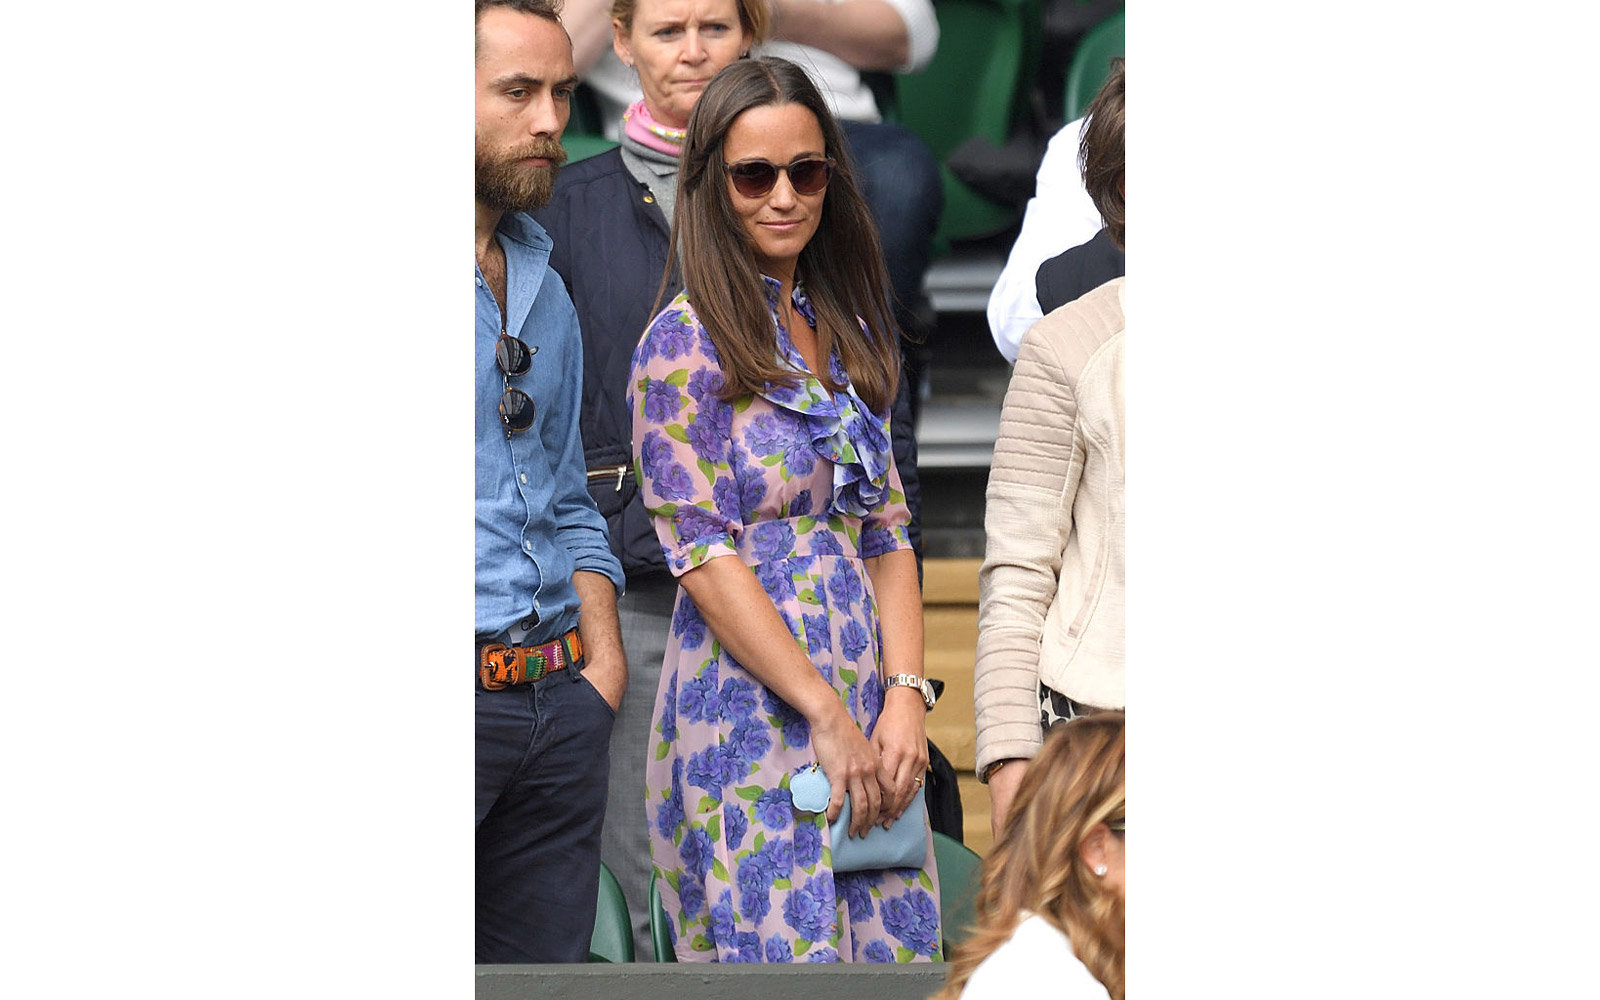 LONDON, ENGLAND - JULY 08:  Pippa Middleton attends day eleven of the Wimbledon Tennis Championships at Wimbledon on July 08, 2016 in London, England.  (Photo by Karwai Tang/WireImage)